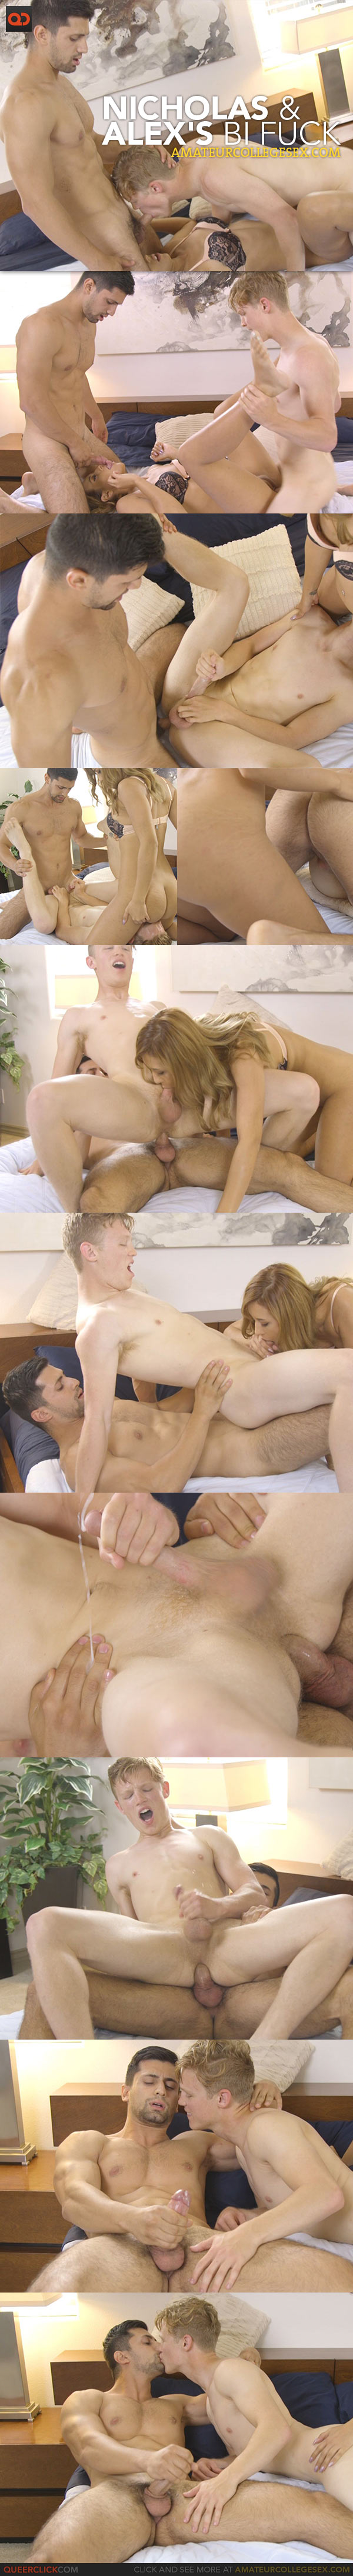 Amateur College Sex: Nicholas and Alex's Bi Fuck